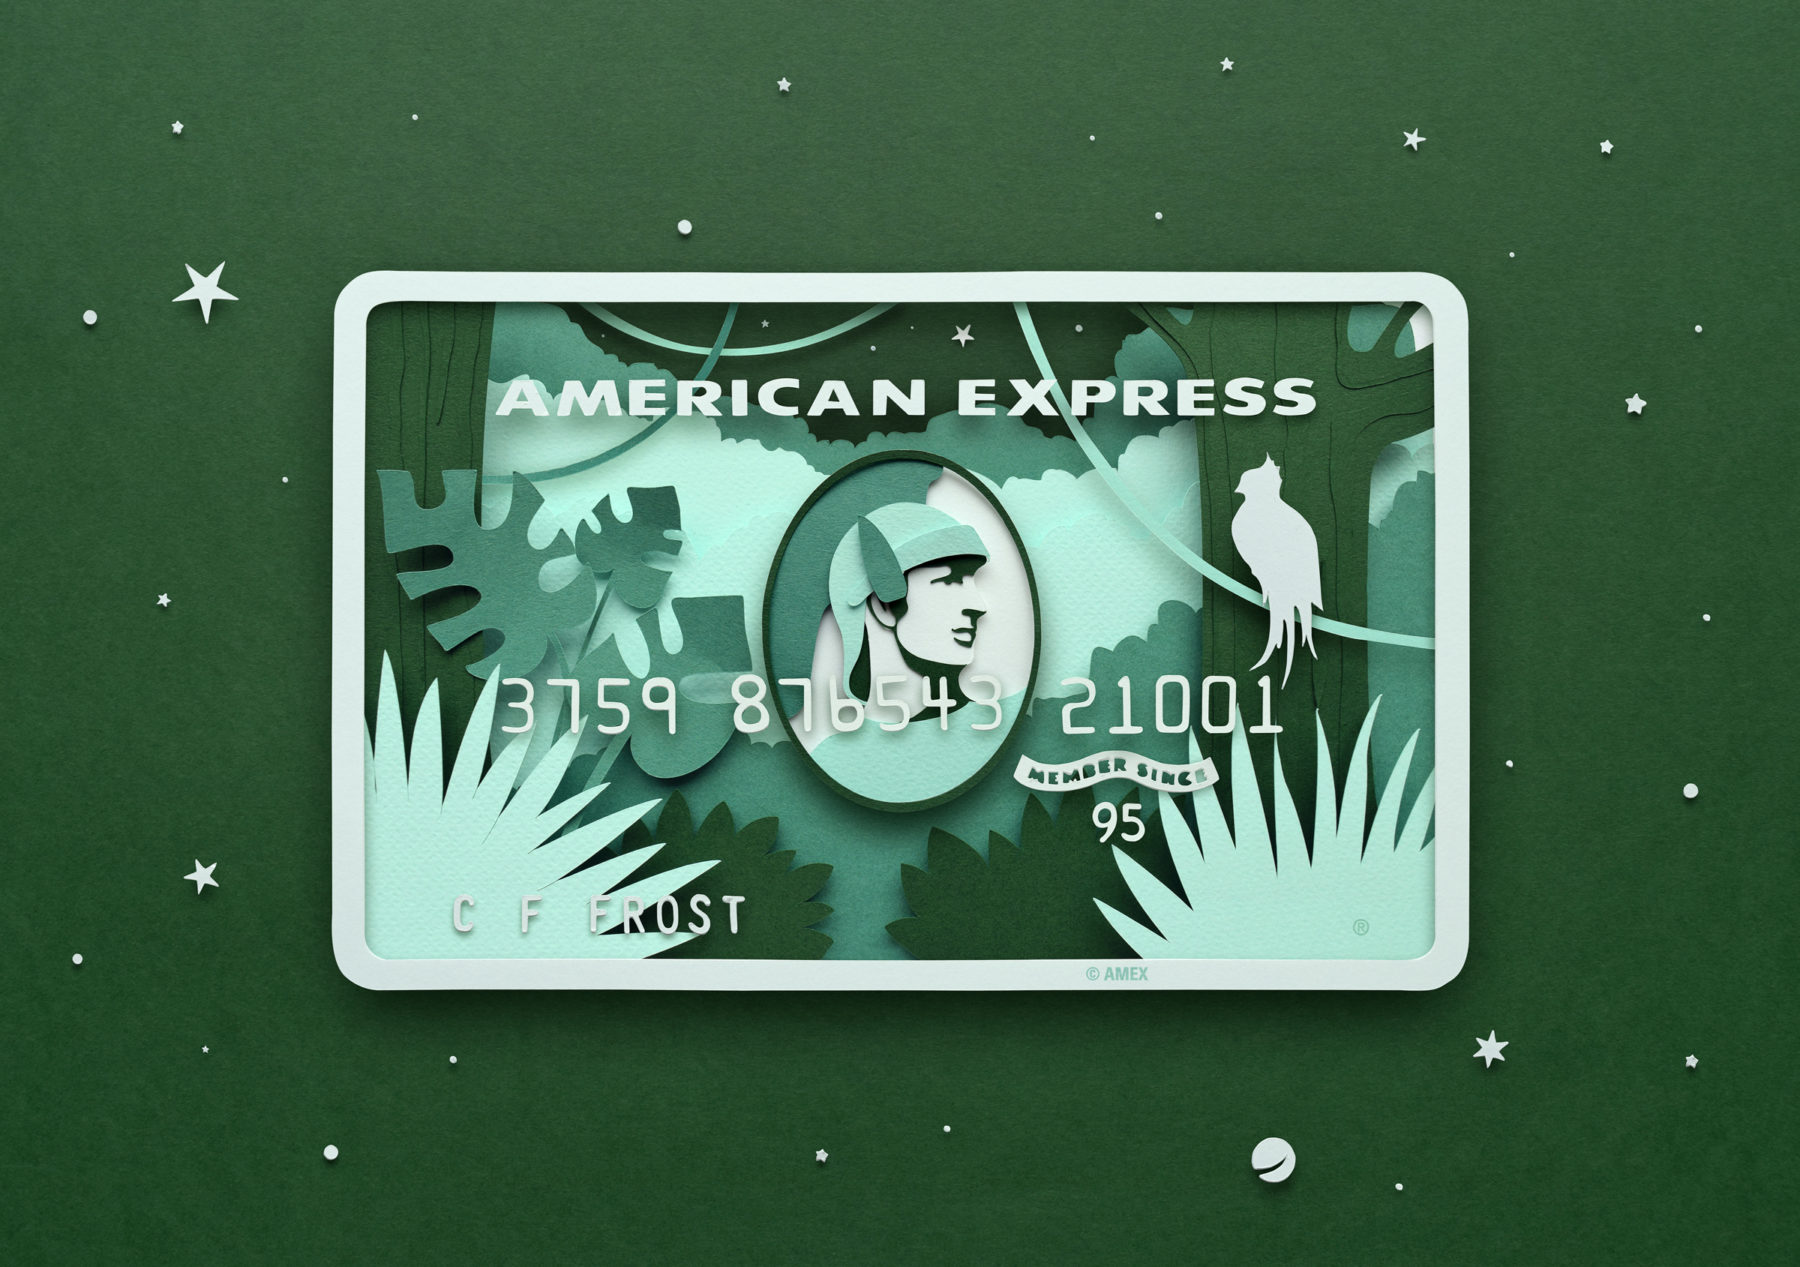 Paper Illustrations for American Express Card Series by Owen Gildersleeve - Green